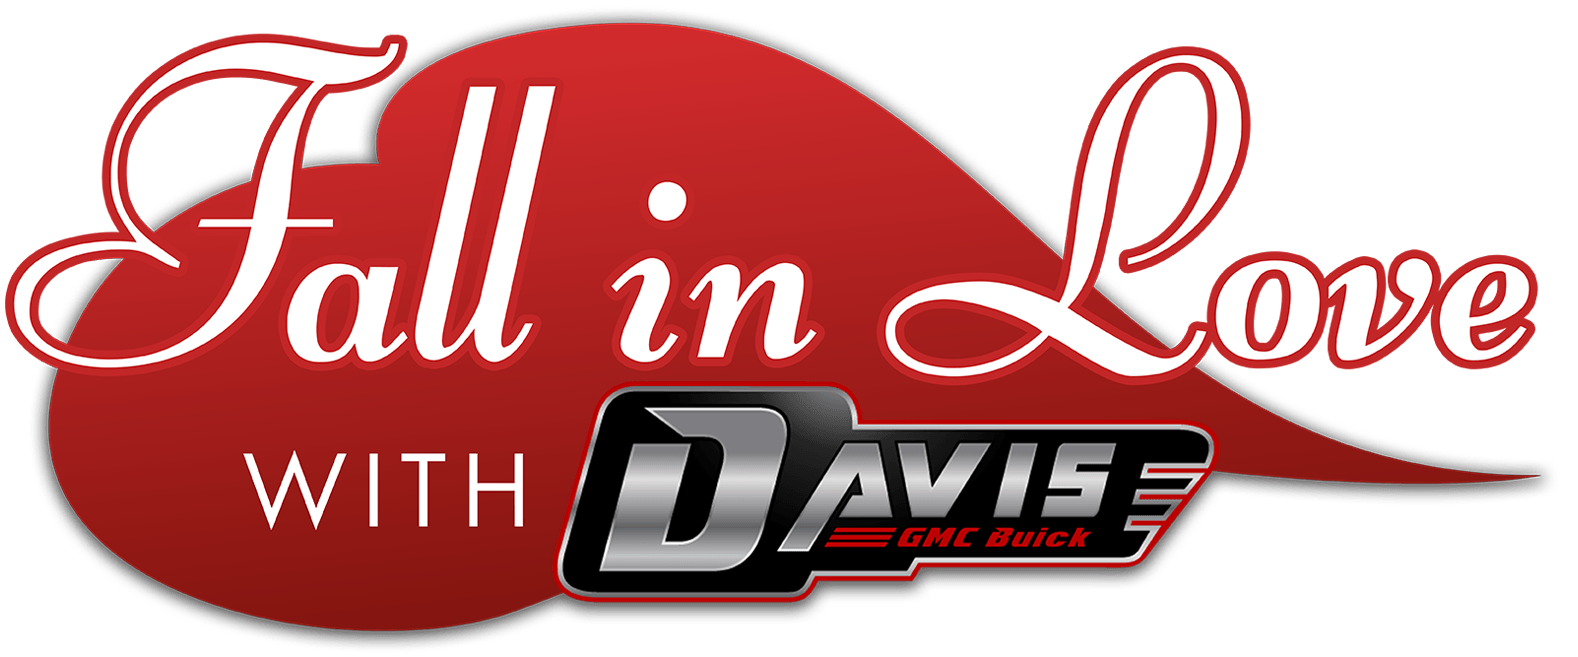 Fall in love with Davis Event